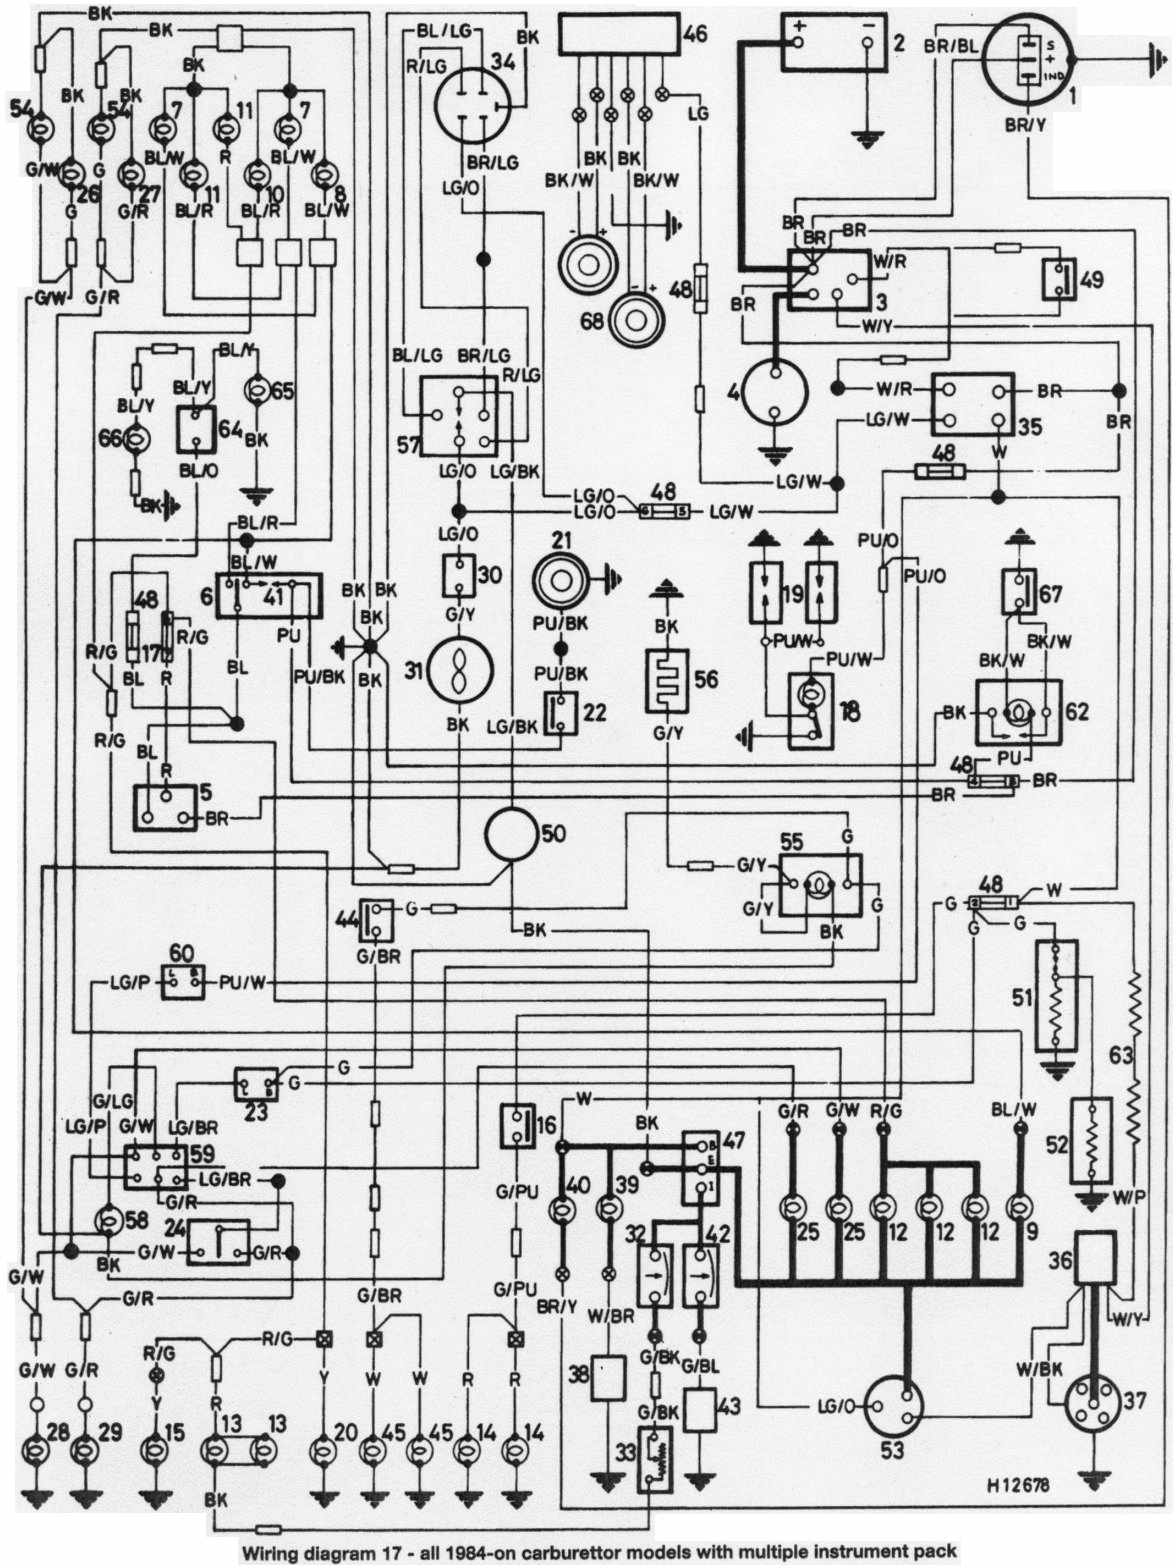 wiring diagram of 1984 onwards all mini series with multiple instrument pack?t\=1508499130 bmw mini wiring diagram gem e2 wiring diagrams \u2022 wiring diagrams 2007 mini cooper wiring diagrams at alyssarenee.co